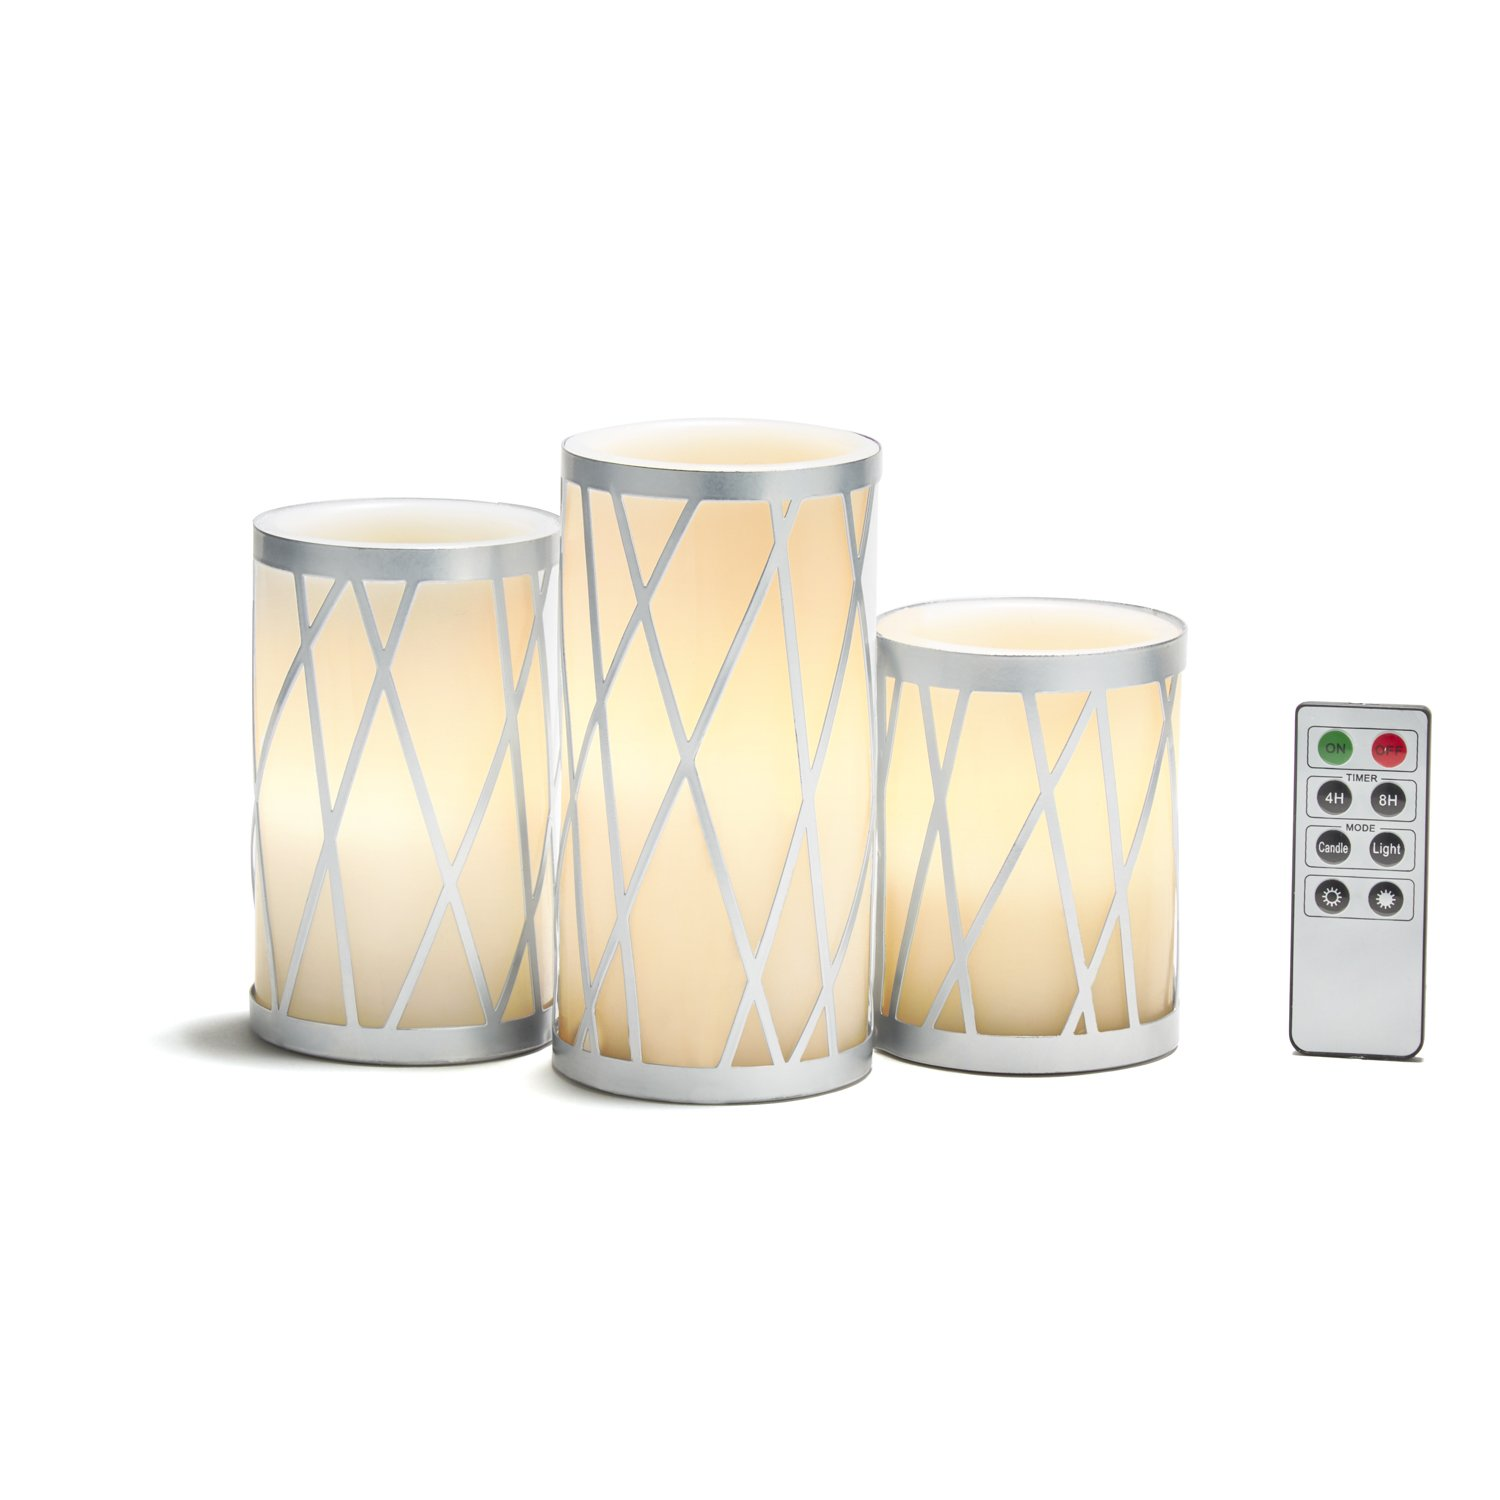 White Flameless Pillar Candles, Silver Metal Removable Holders, Real Wax, Set of 3, Warm White LEDs, Remote & Batteries Included - Great for Gifts, Weddings and Home Decor